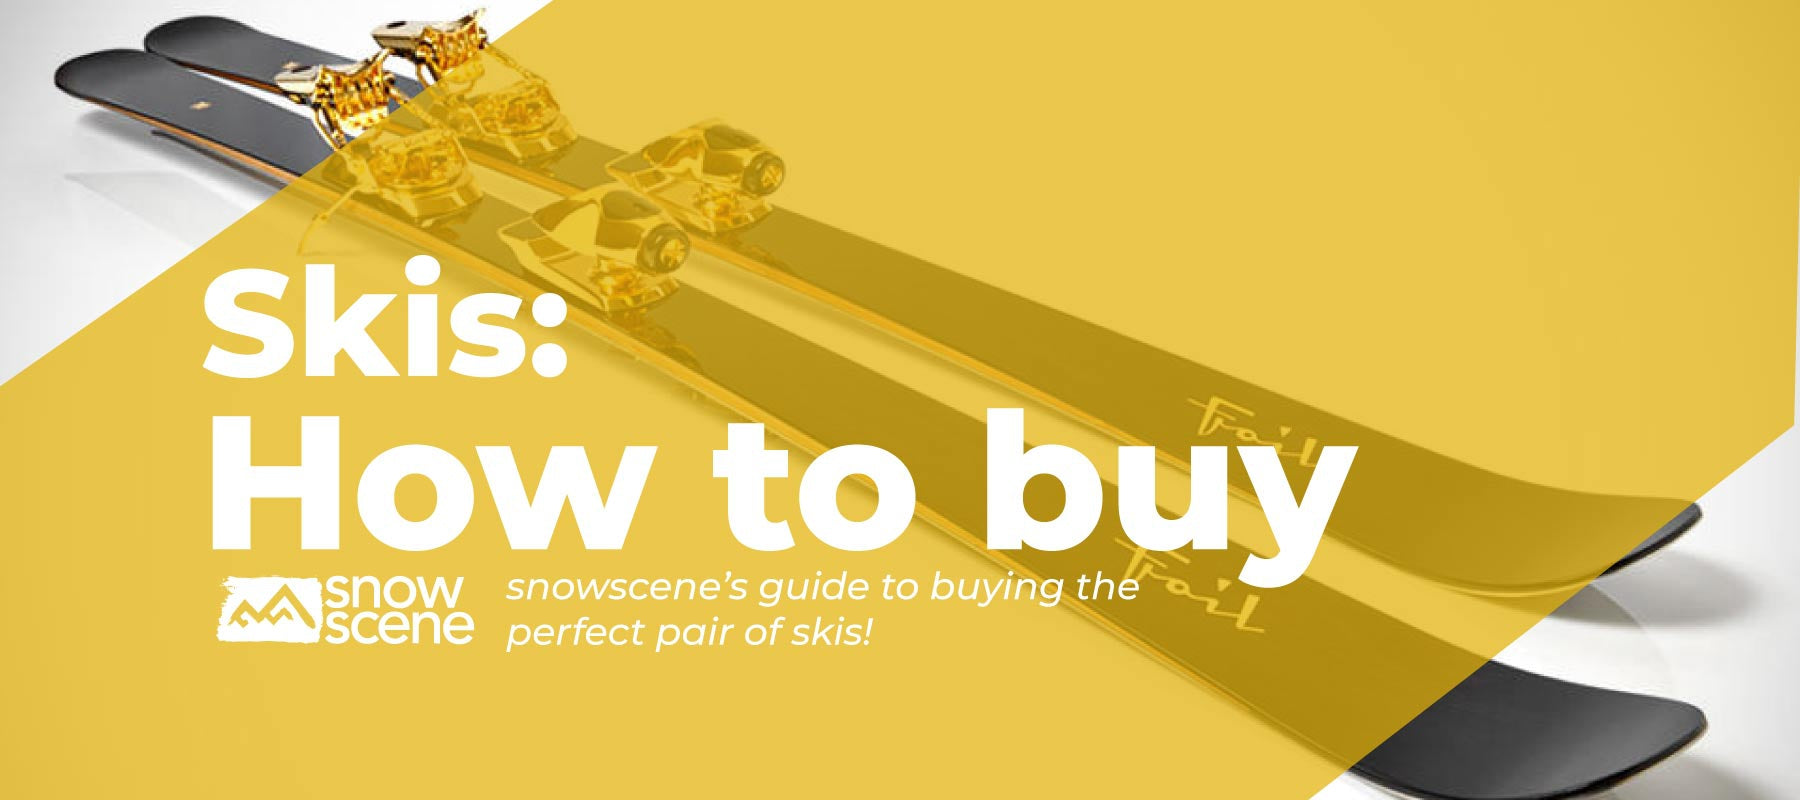 Guide to Buying your Perfect Pair of Skis-snowscene ski and board